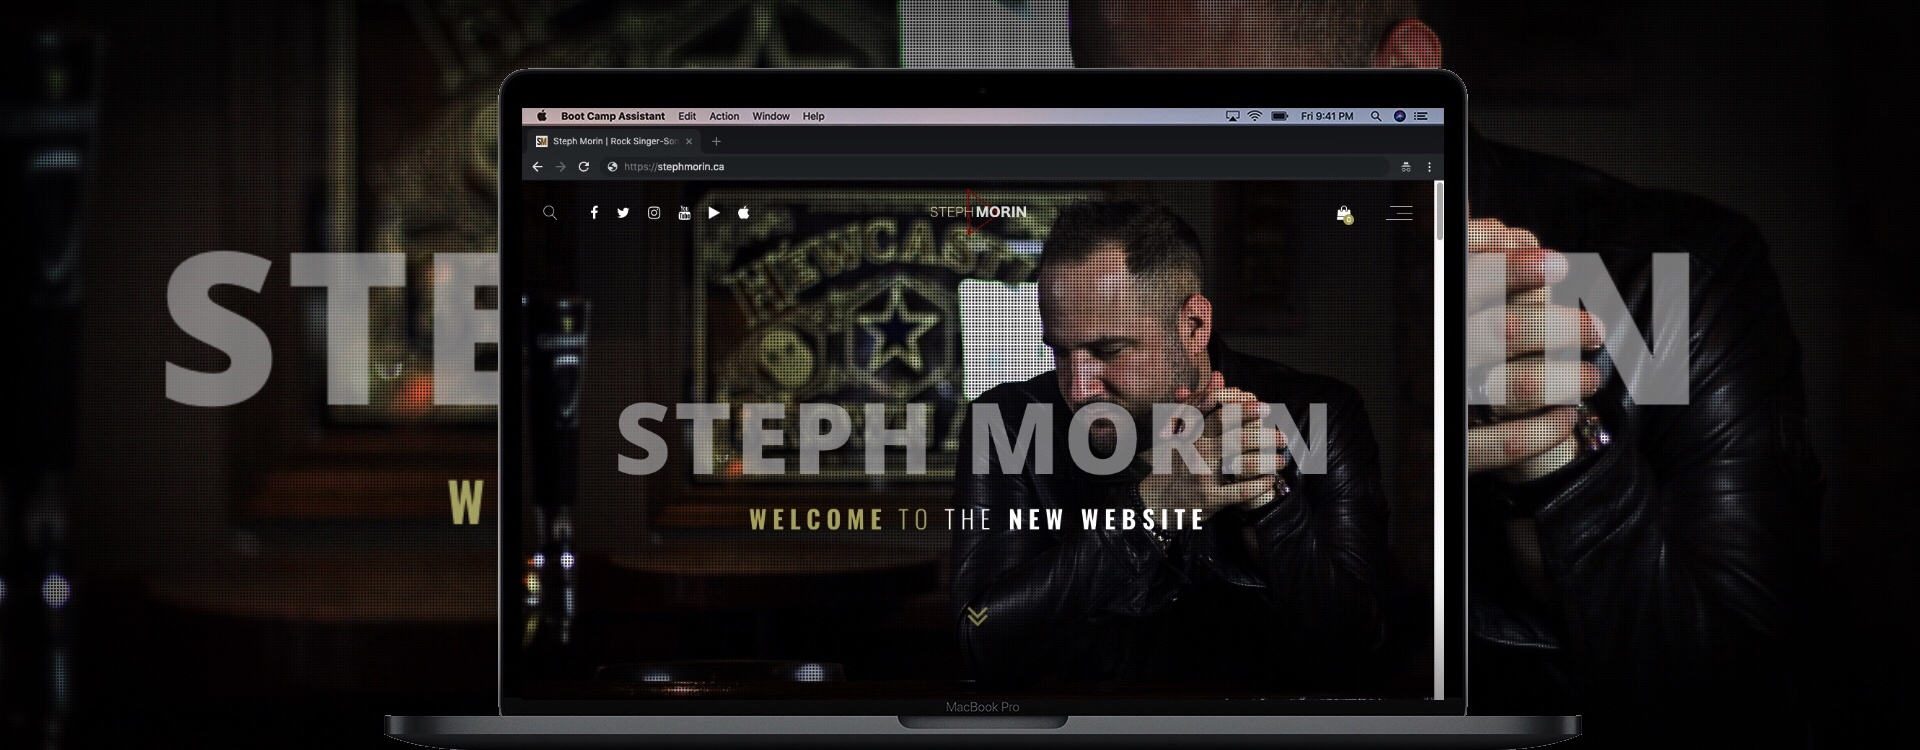 Steph Morin New Website Laptop Center